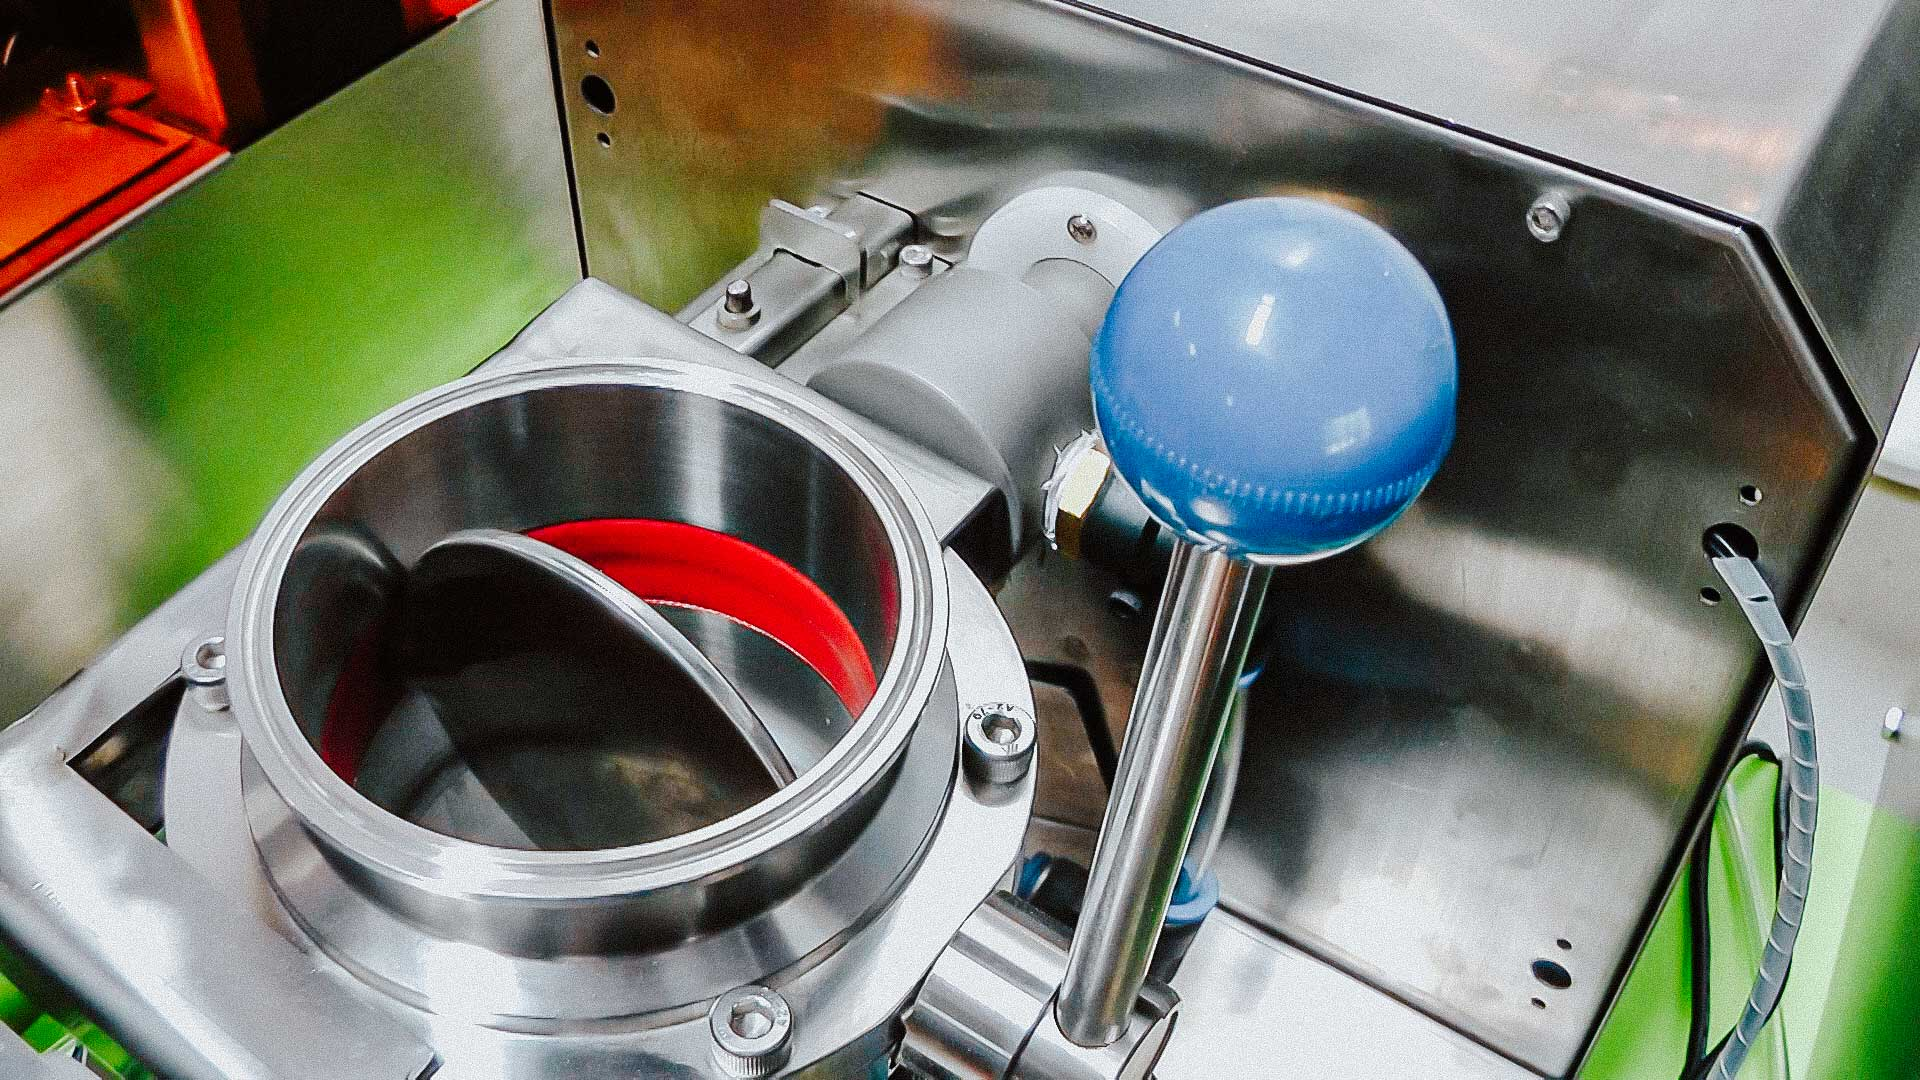 Laboratory pharmaceutical equipment for the production of pharmaceutical raw materials